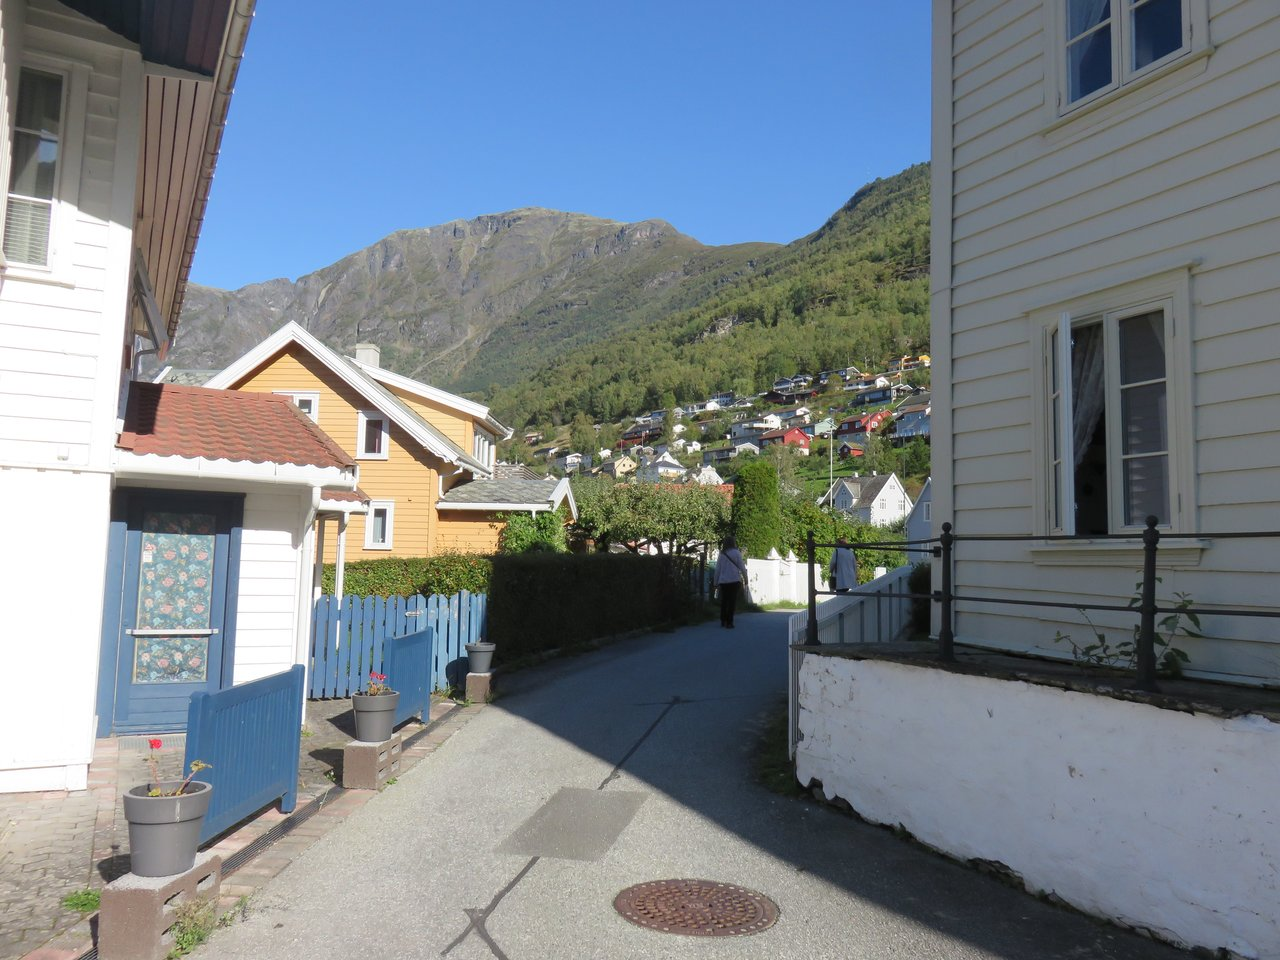 Streets of Aurland | Photo taken by Mary K